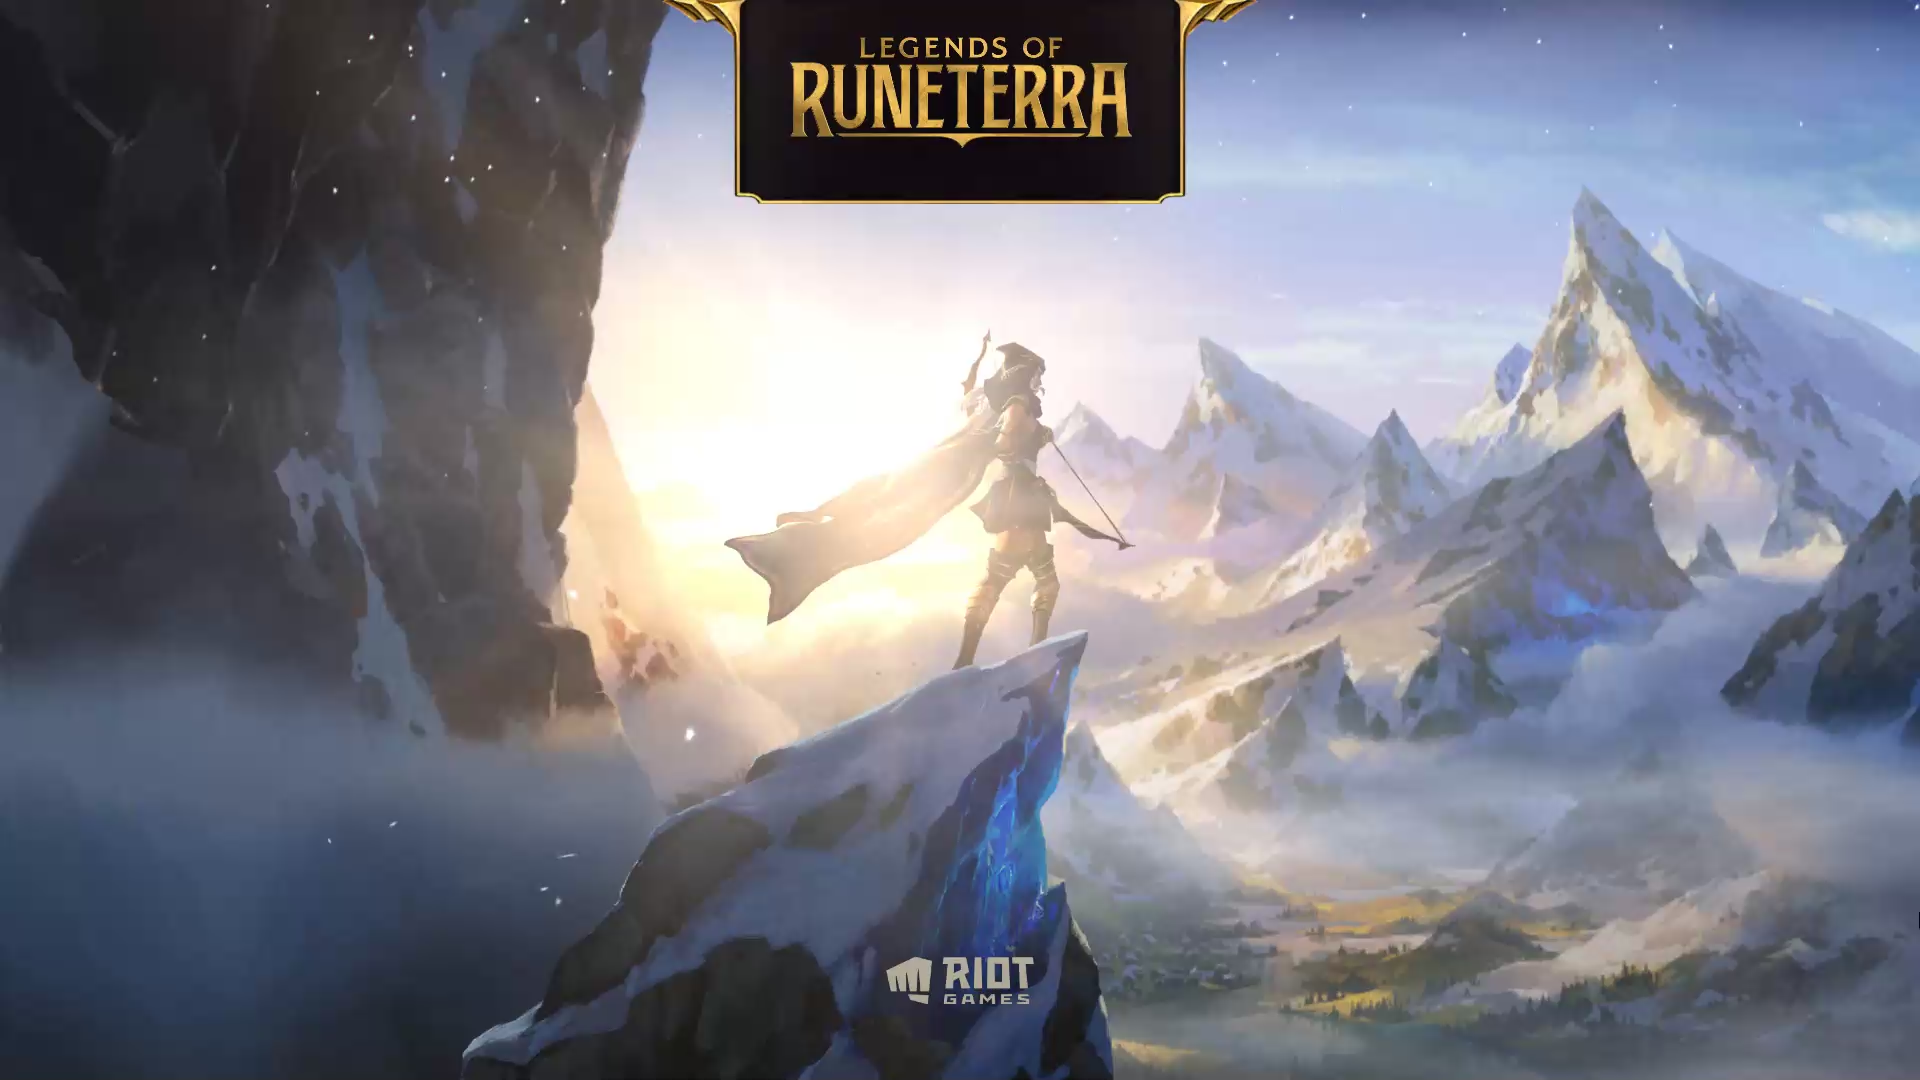 League of Legends creator Riot Games created a card game - Legends of Runeterra